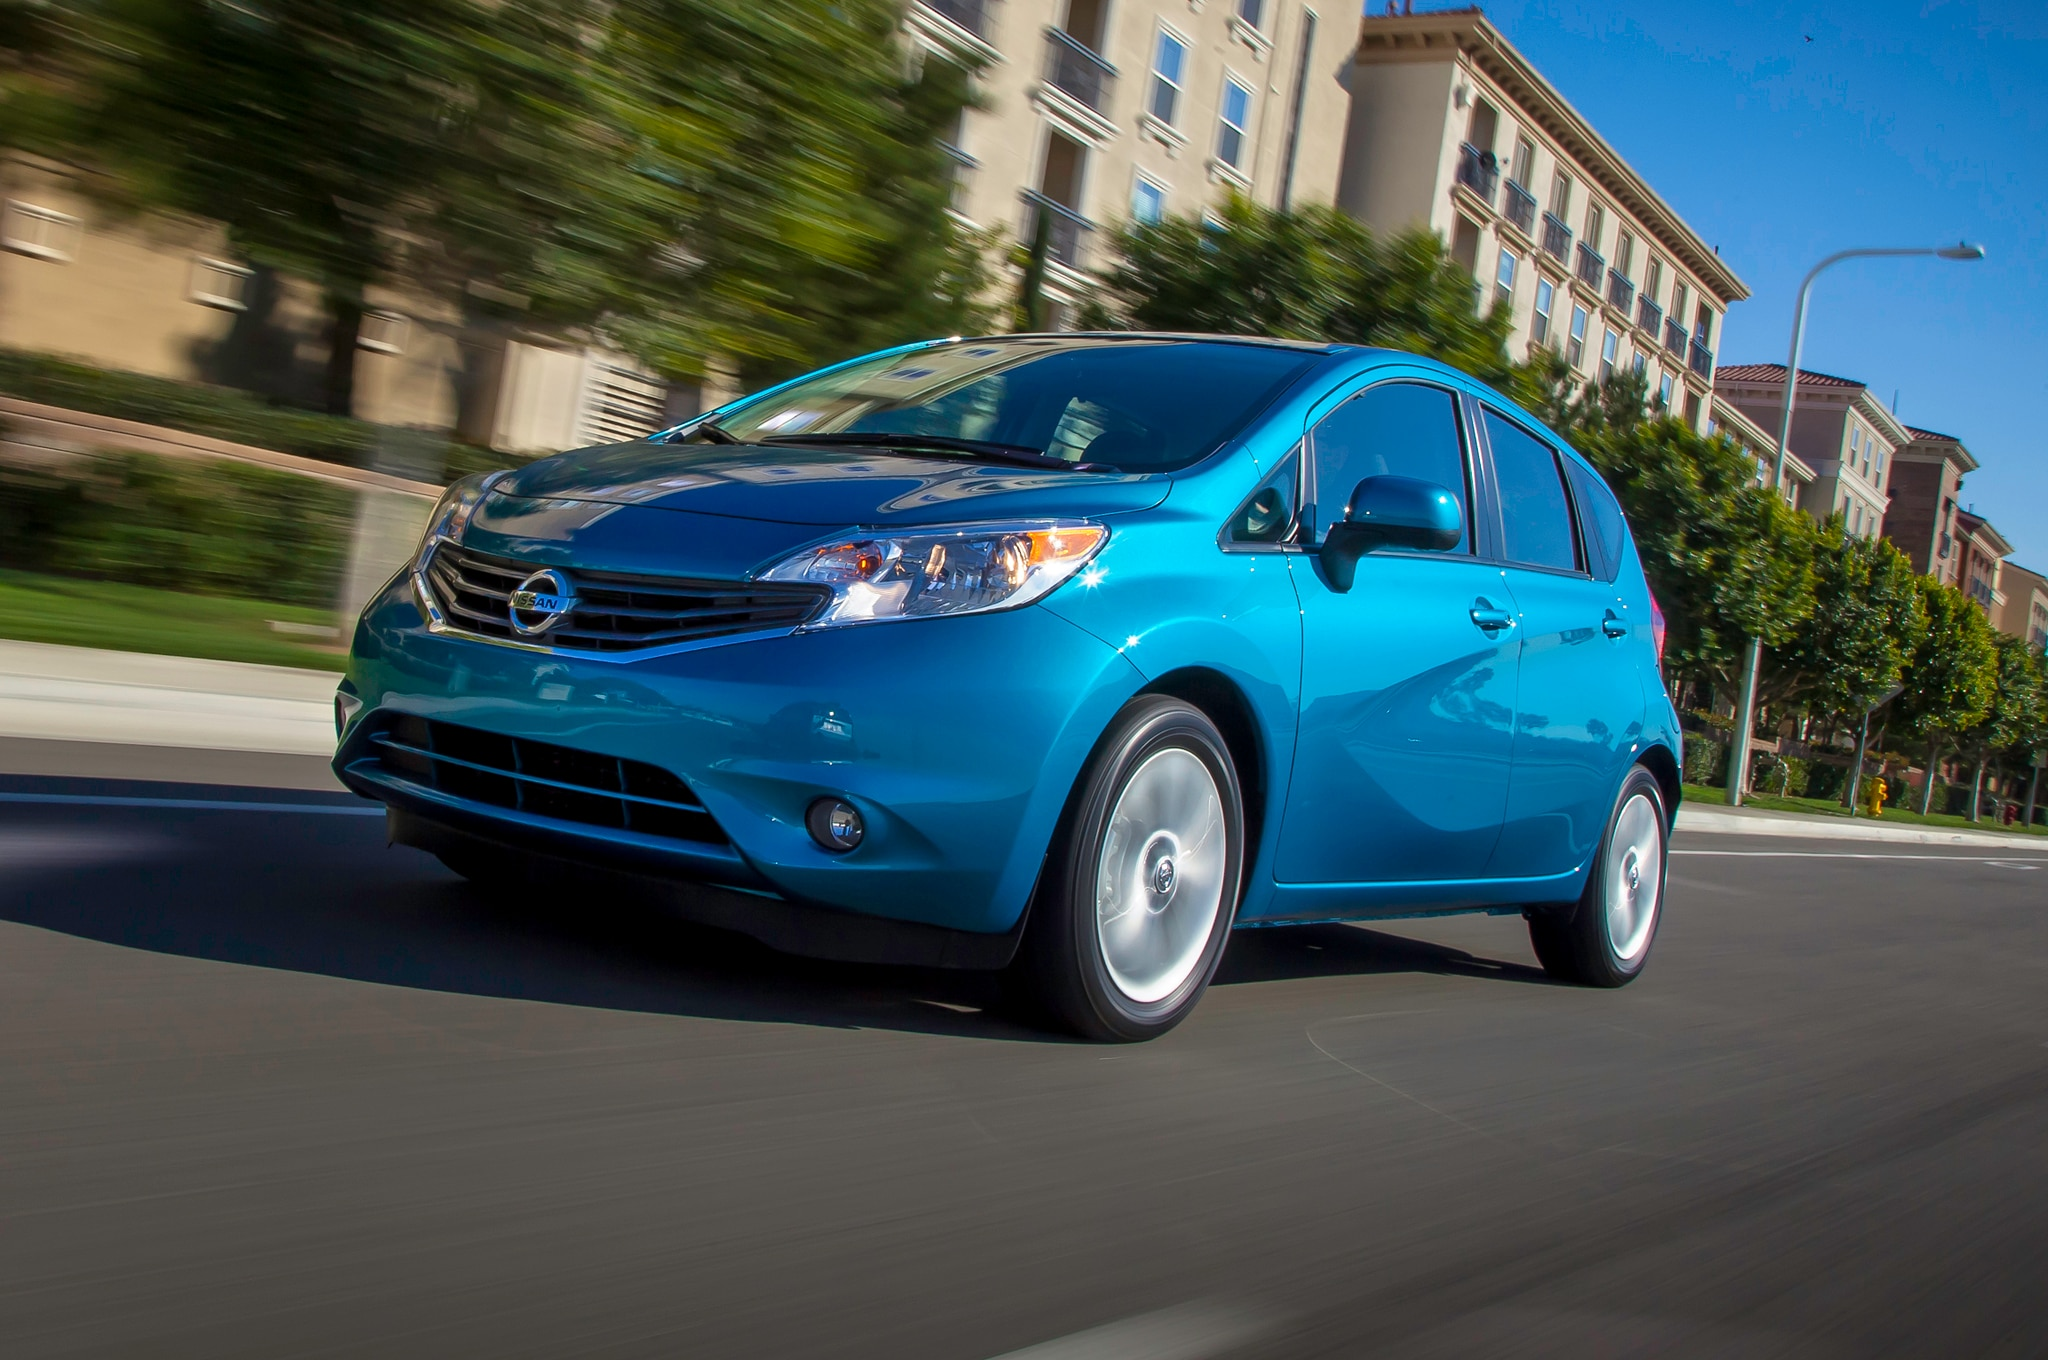 2014 Nissan Versa Note Front Three Quarter 21